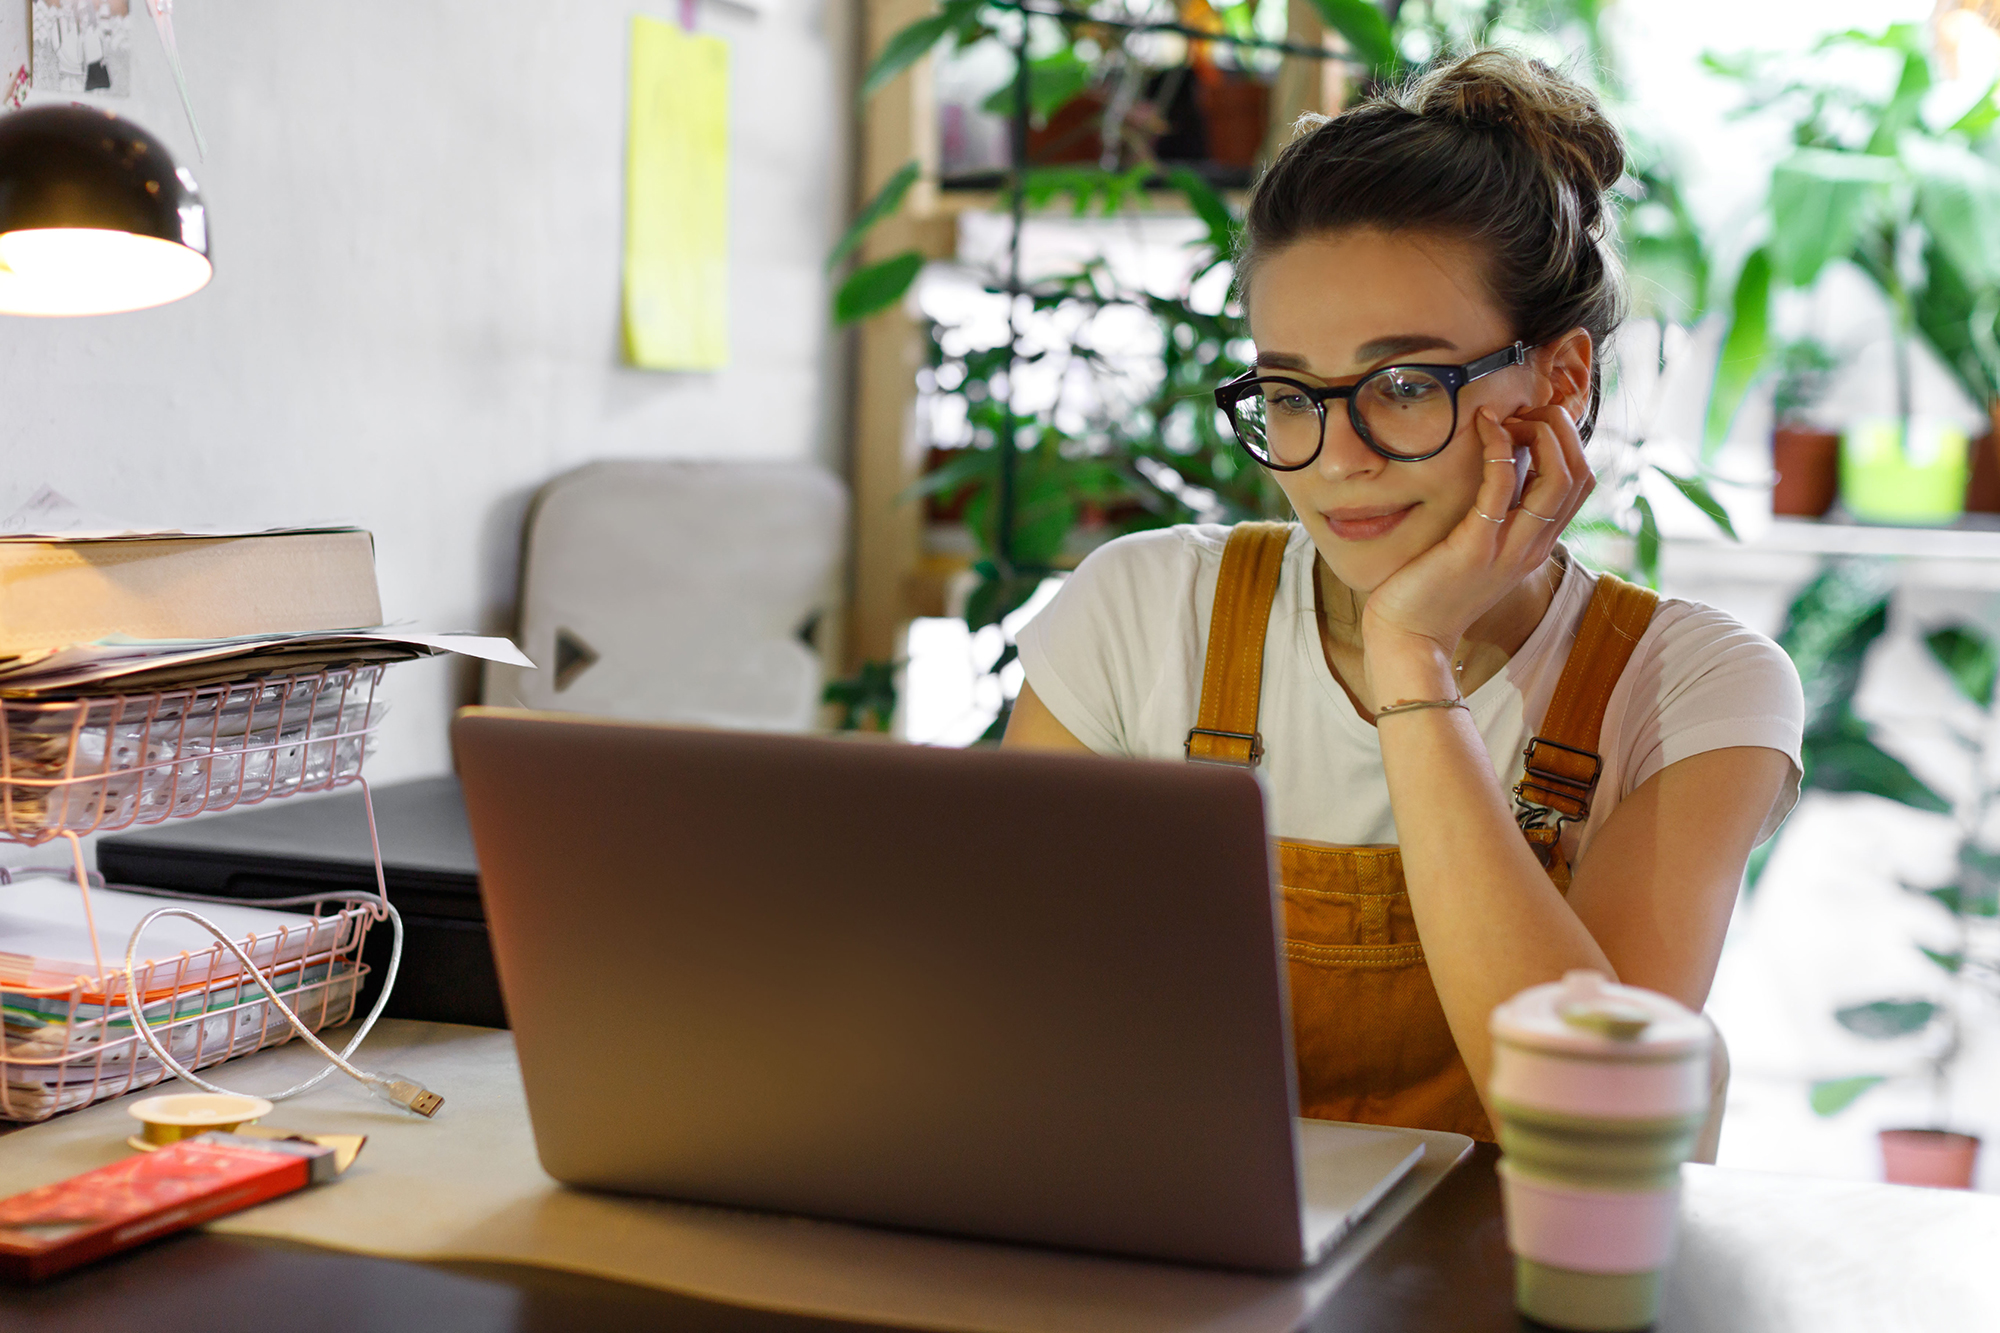 Woman working from home. (Image: Shutterstock)